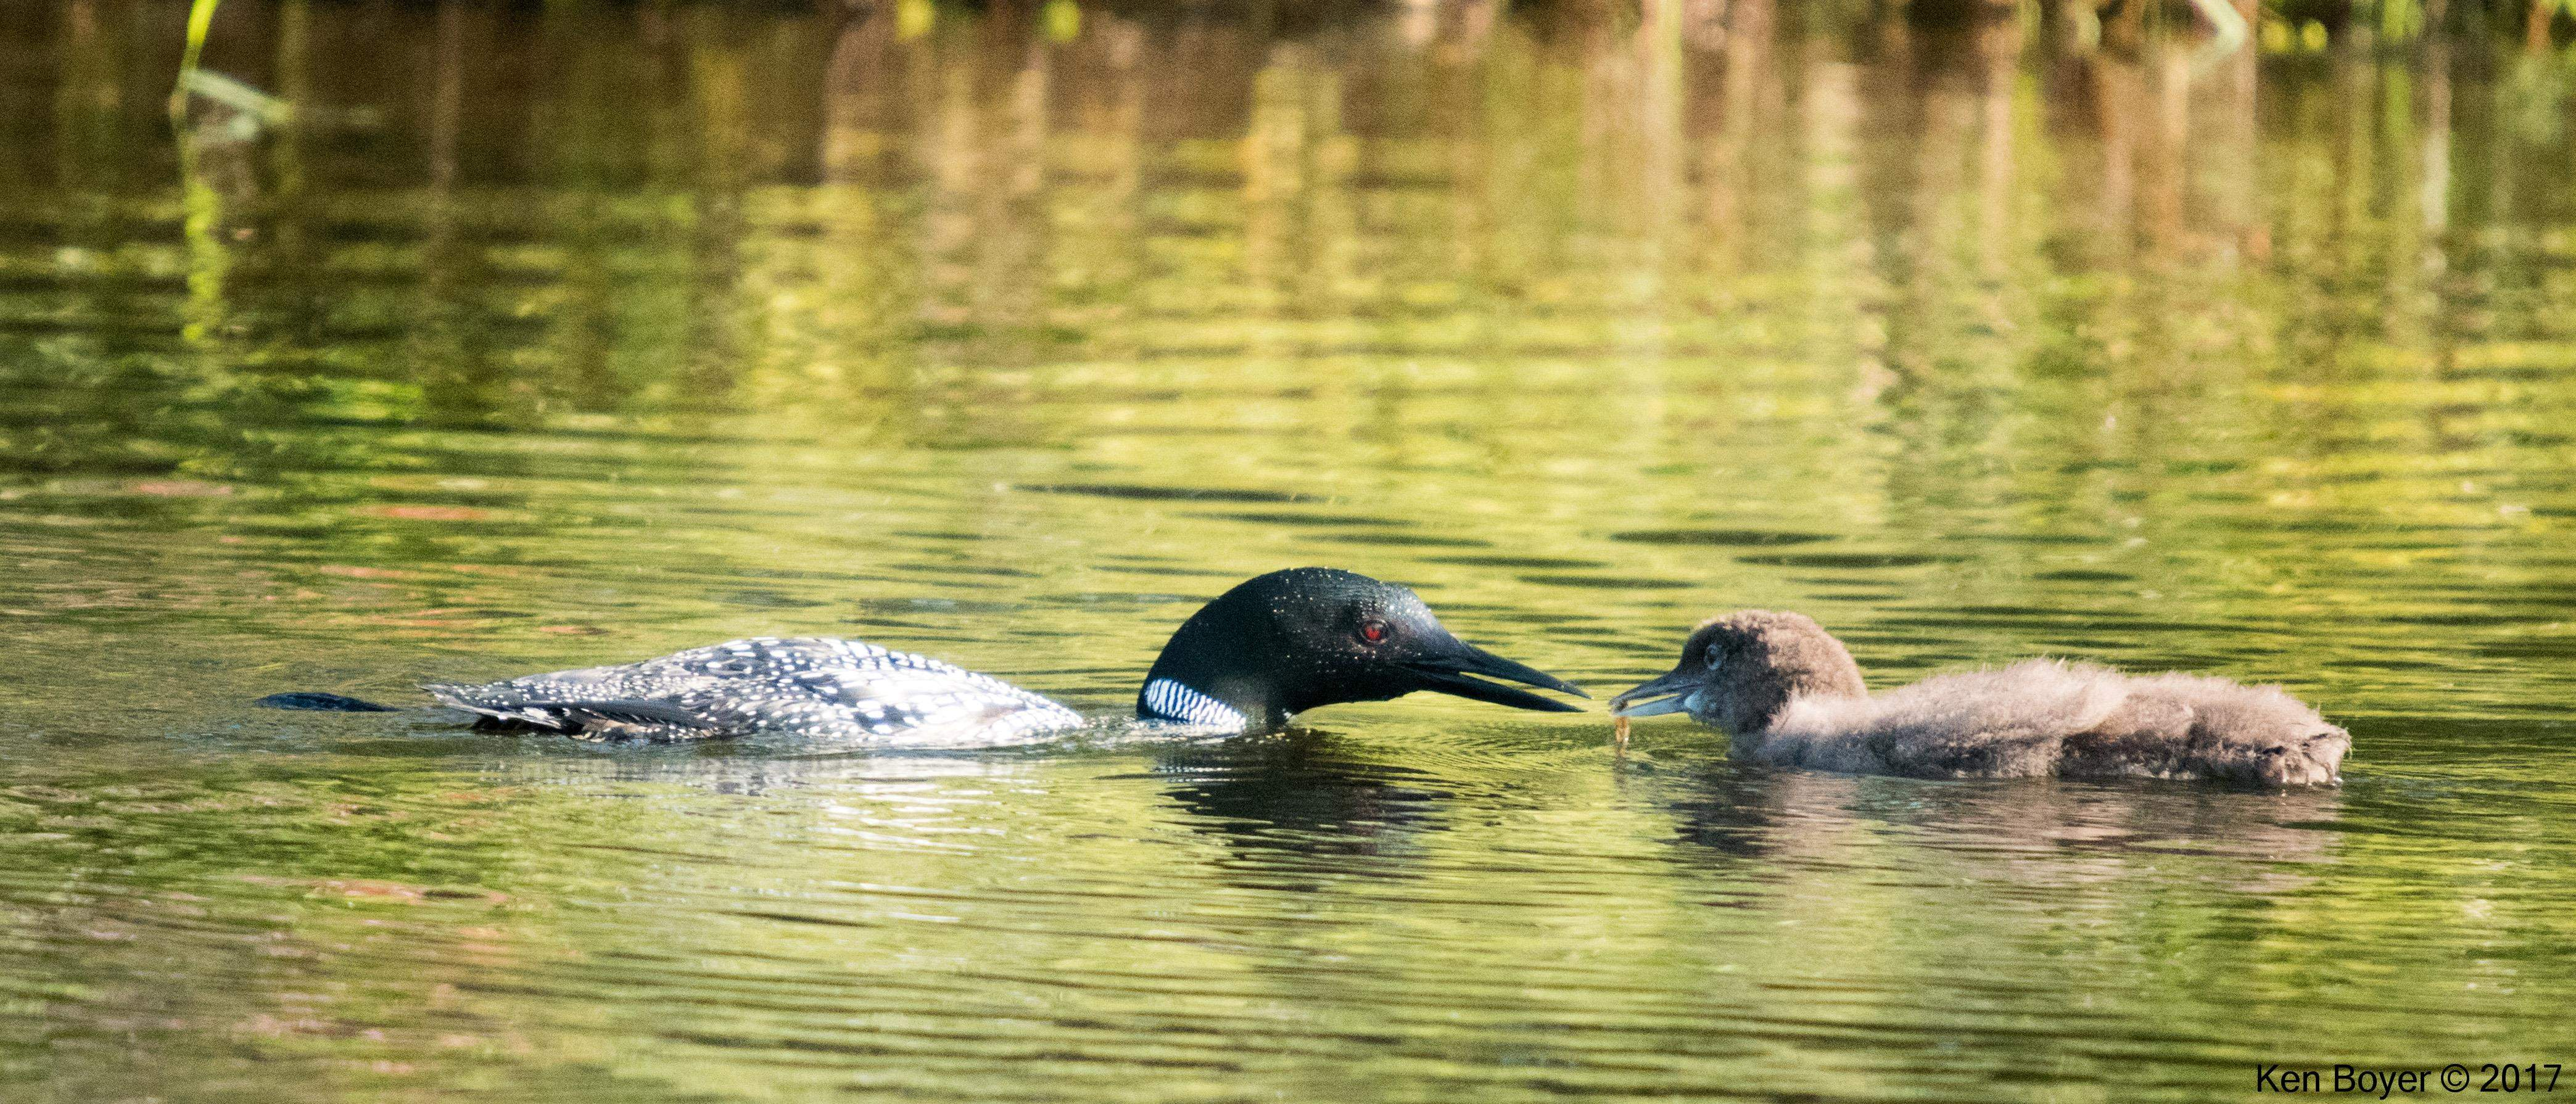 Common Loon feeding baby